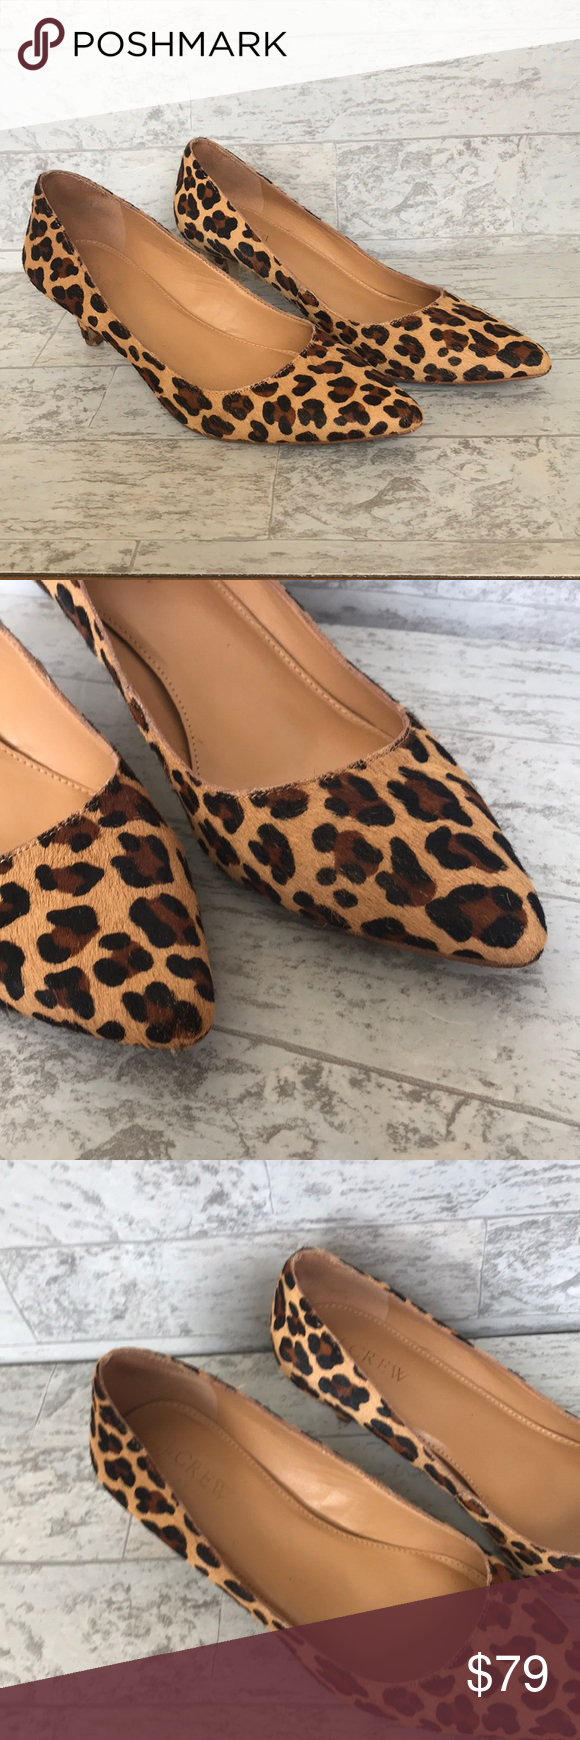 J Crew Esme Leopard Kitten Heels Fashion Outfit Shoes Fashion Outfits